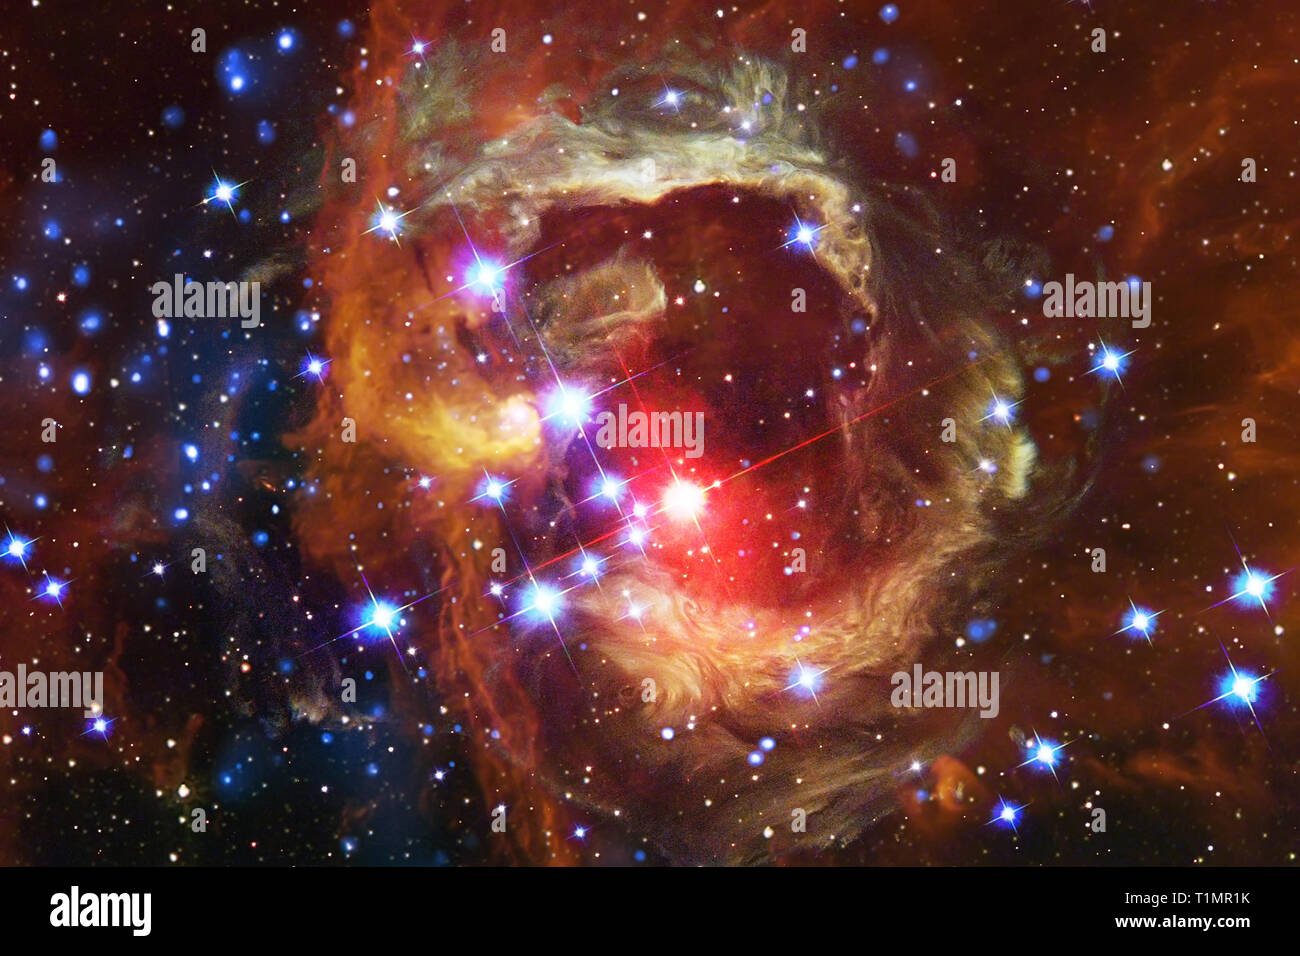 galaxies stars and nebulas in awesome space image colorful science fiction wallpaper elements of this image furnished by nasa T1MR1K